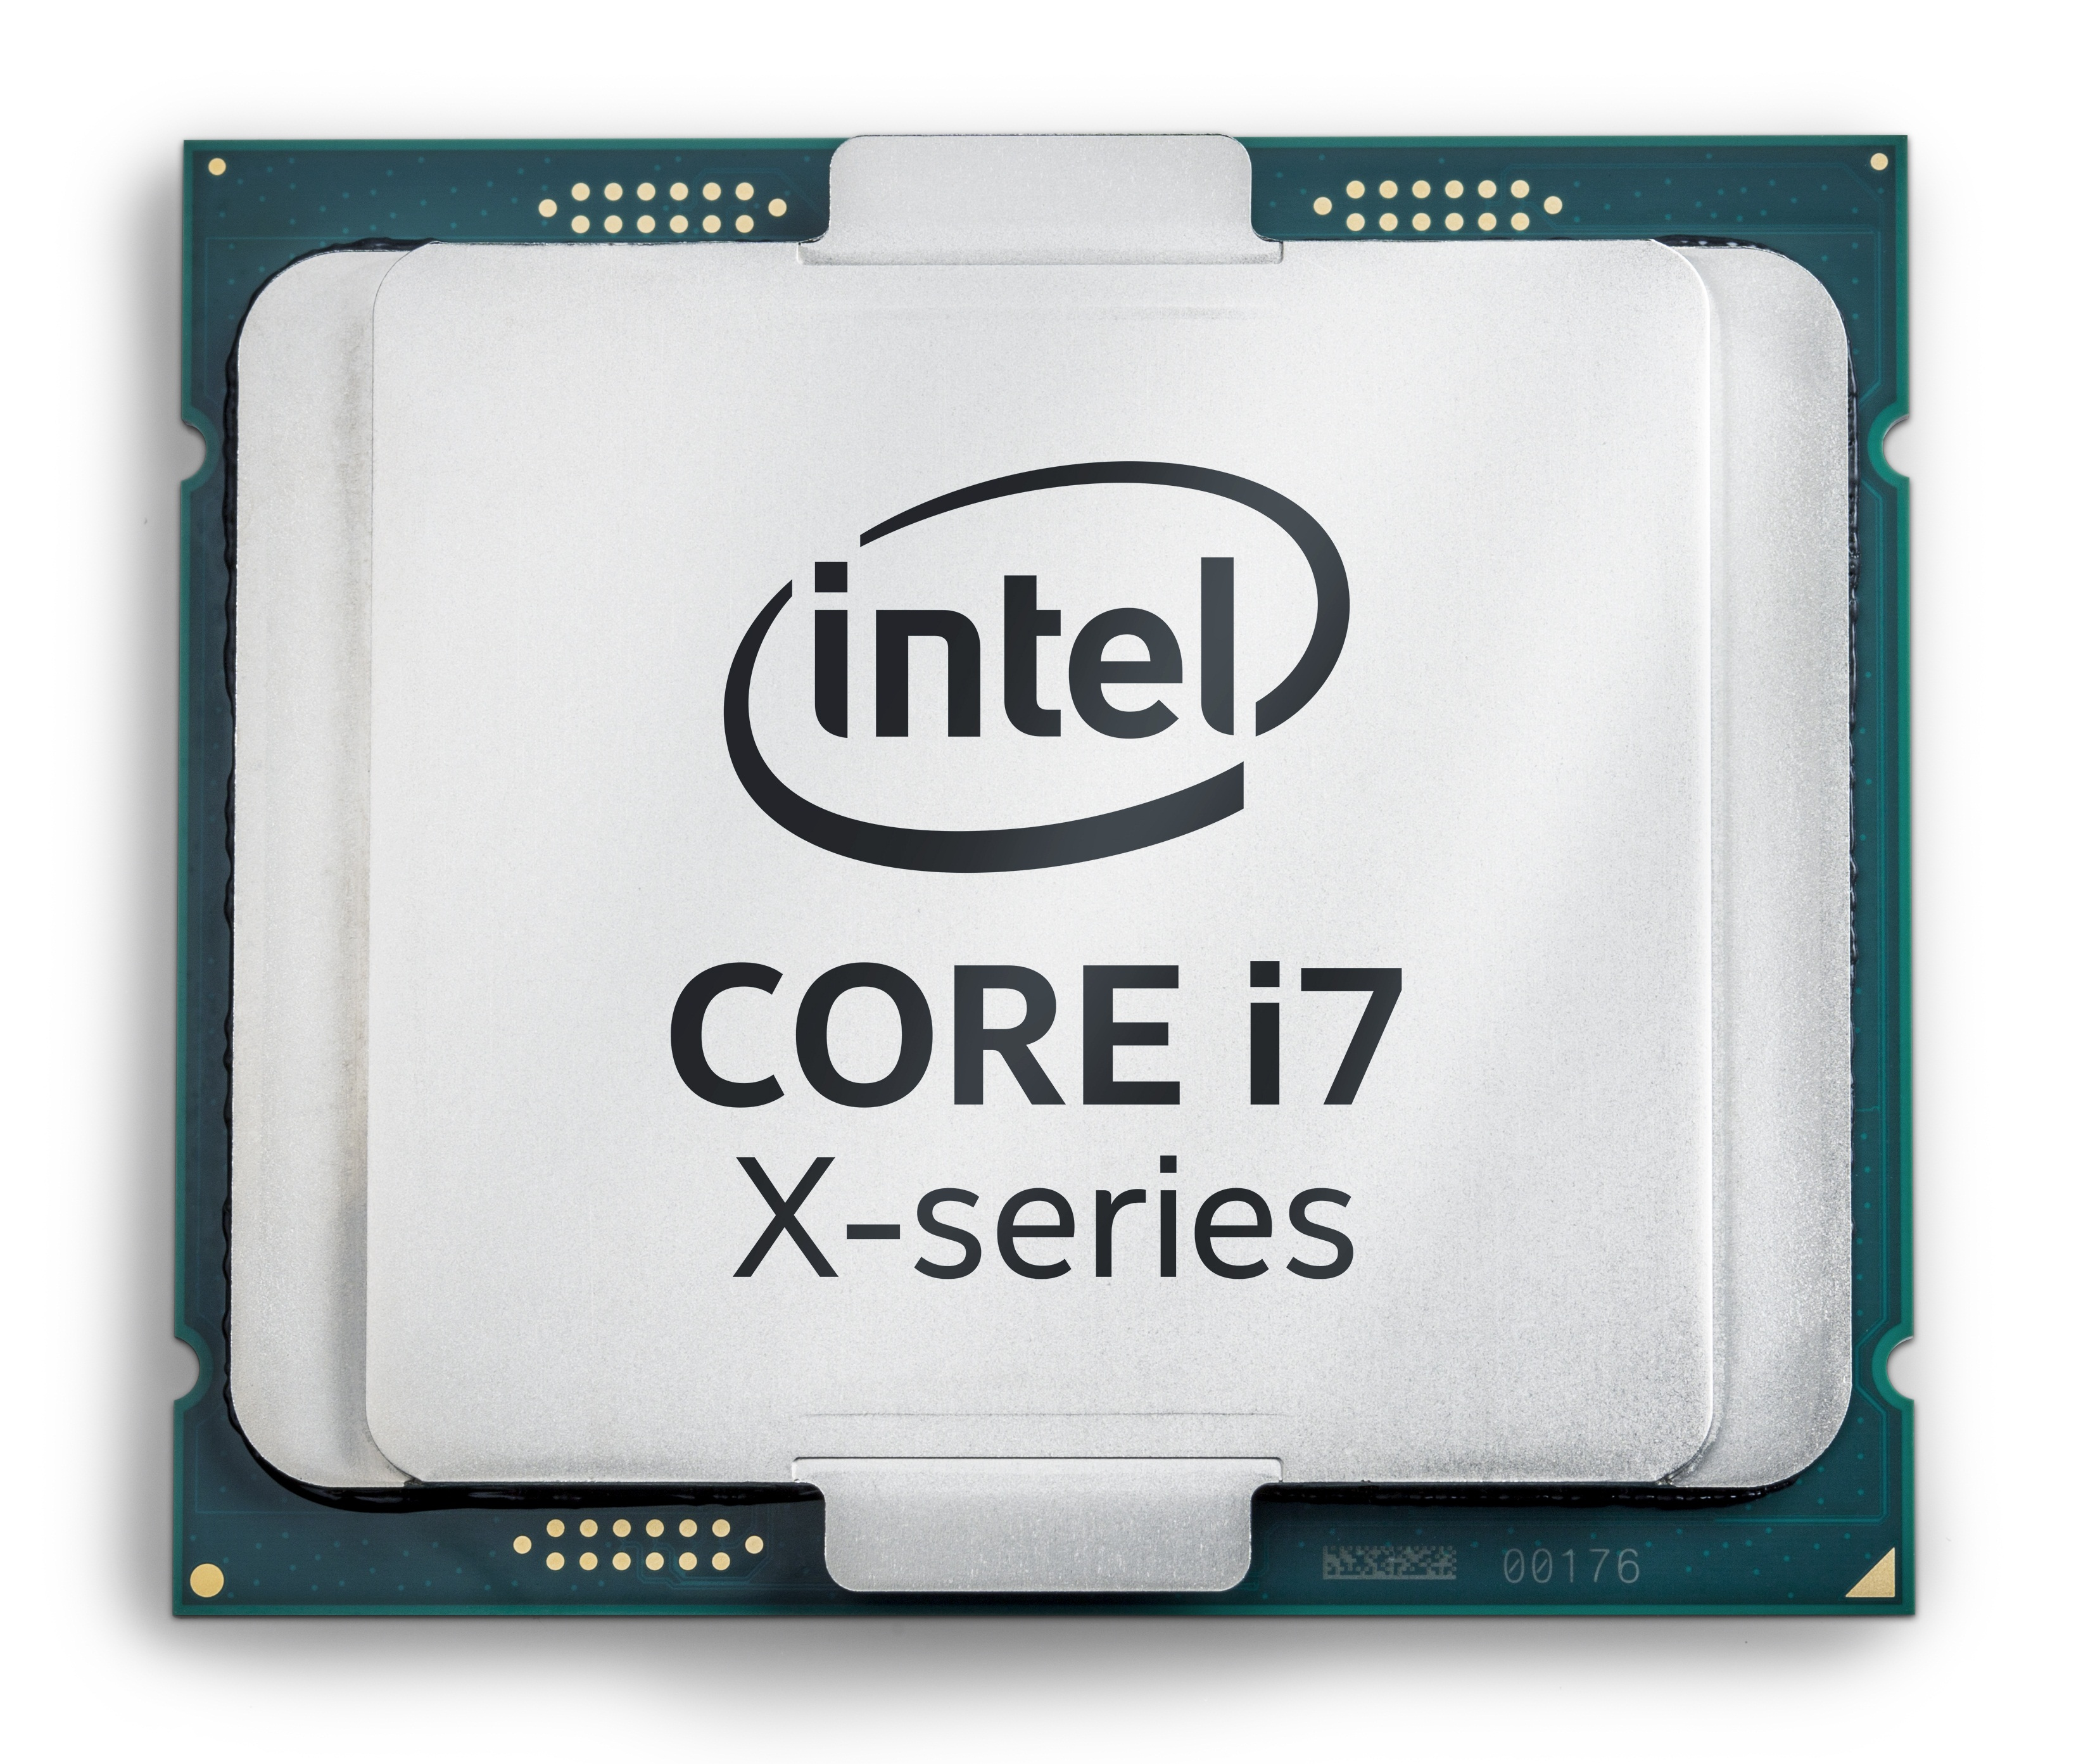 BX80677I77740X Intel Core � � i7-7740X X-series Processor (8M Cache, up to 4.50 GHz) 4.3GHz 8MB Smart Cache Box processor - Ent01